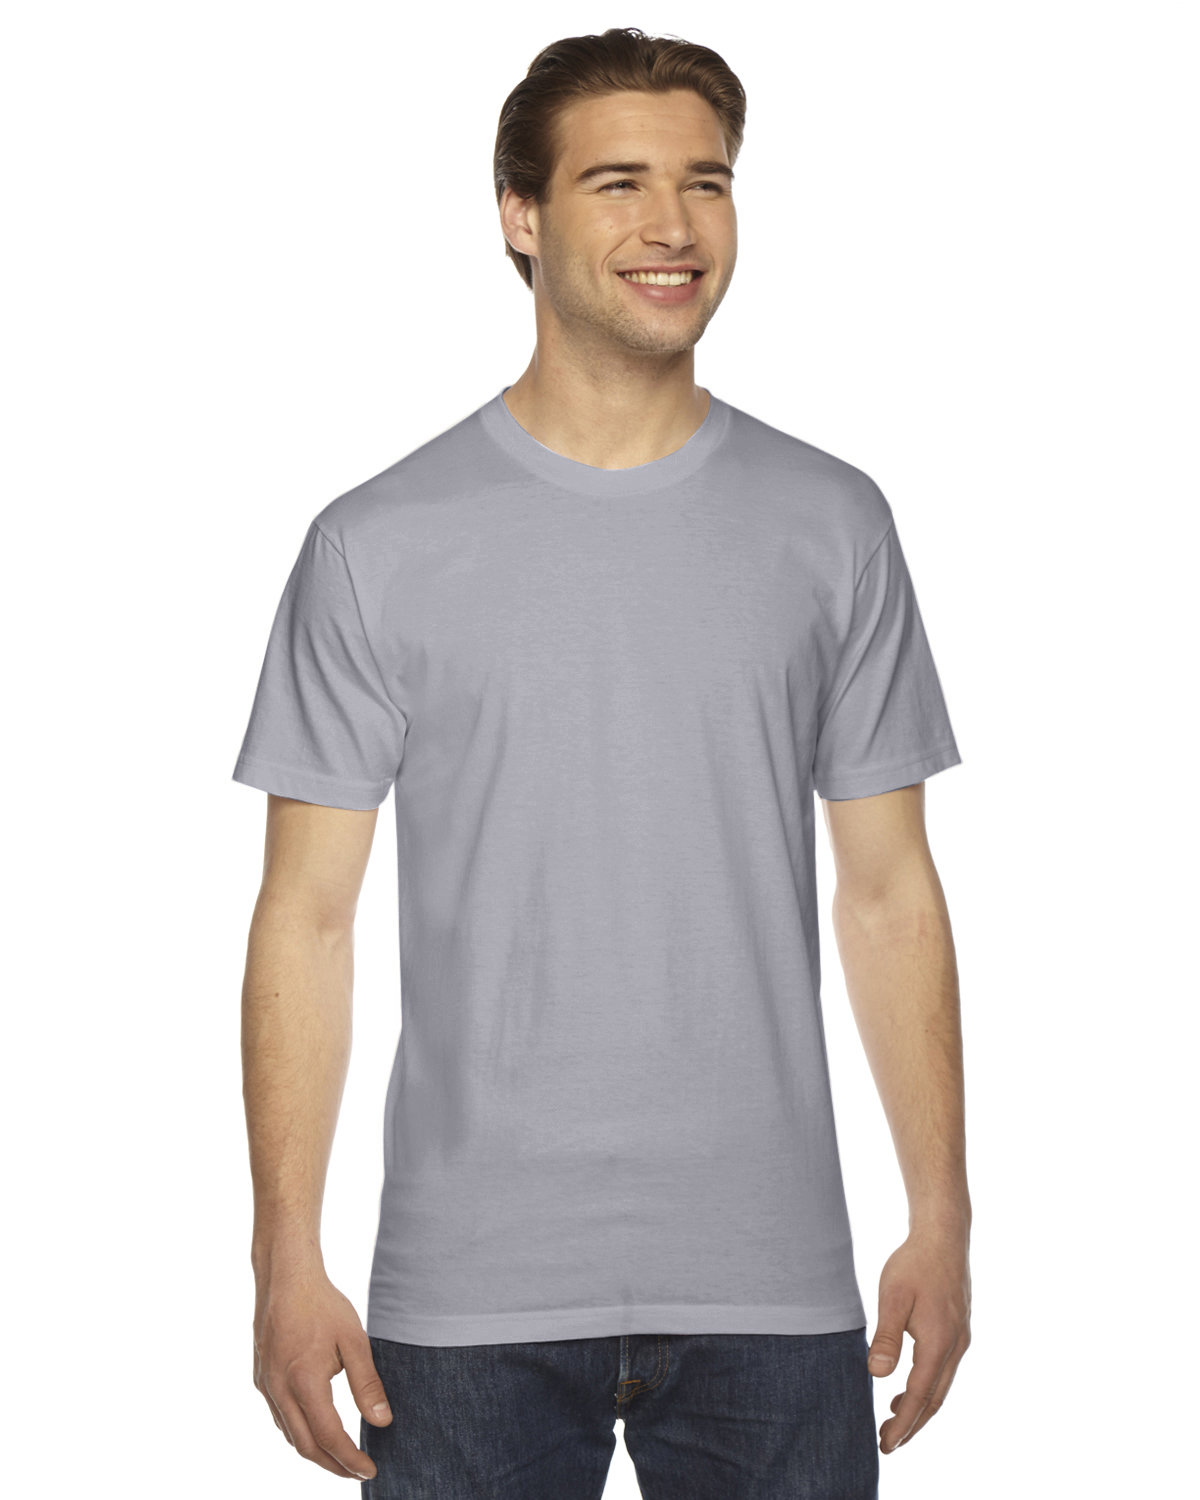 American Apparel Unisex Fine Jersey USA Made T-Shirt SLATE